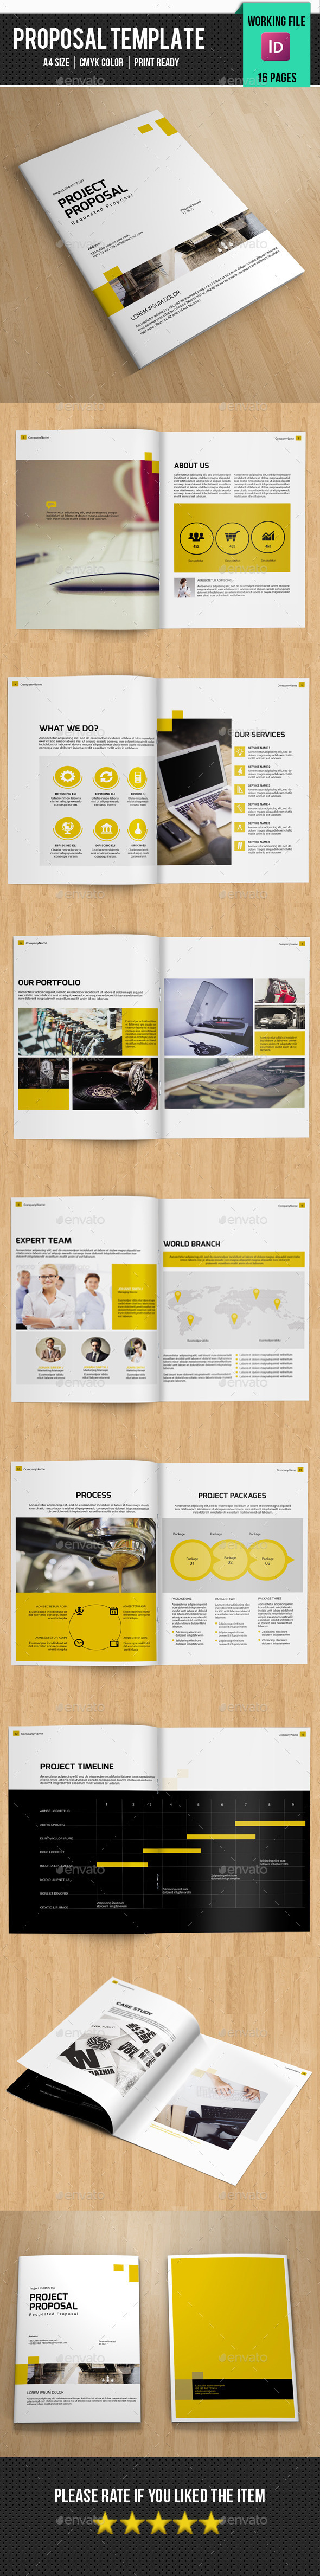 Business Project Proposal Template  Business Brochure On Behance